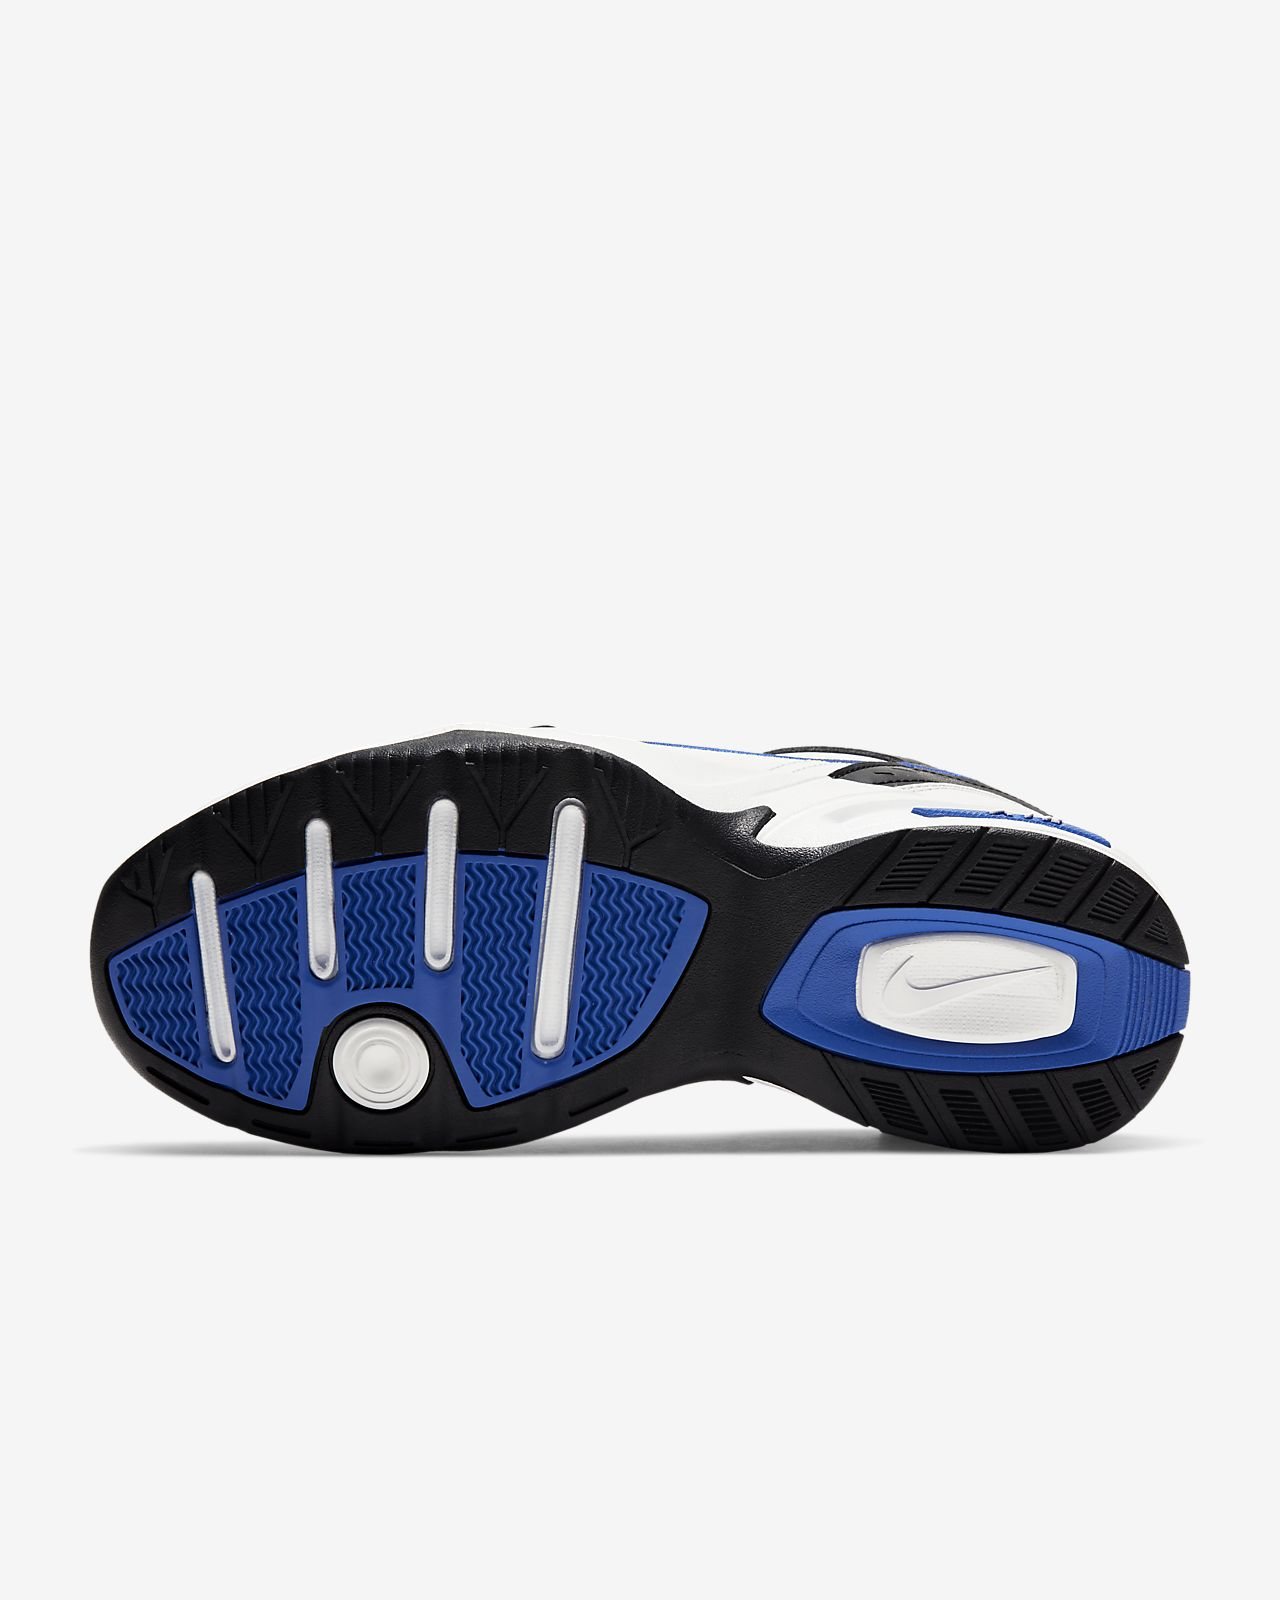 Nike Air Monarch IV (Extra Wide) LifestyleGym Shoe